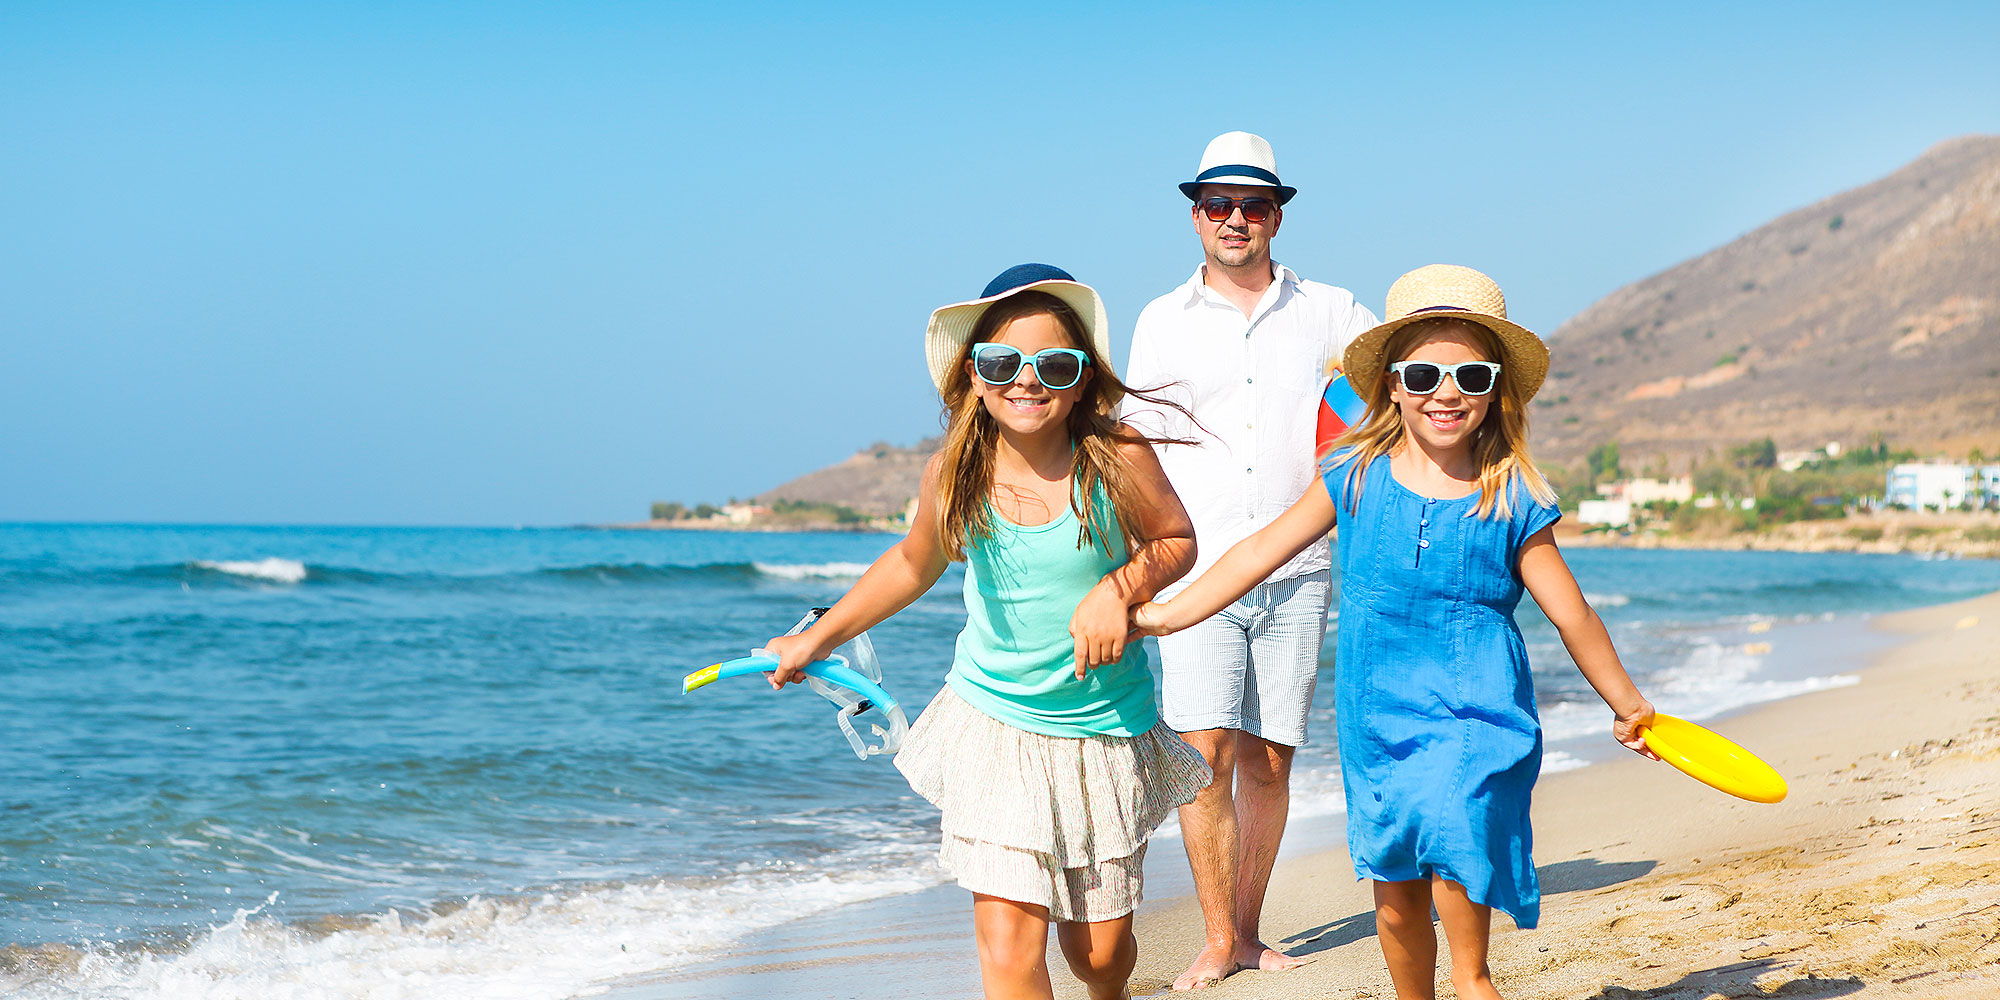 How to Stay Protected from UV Rays